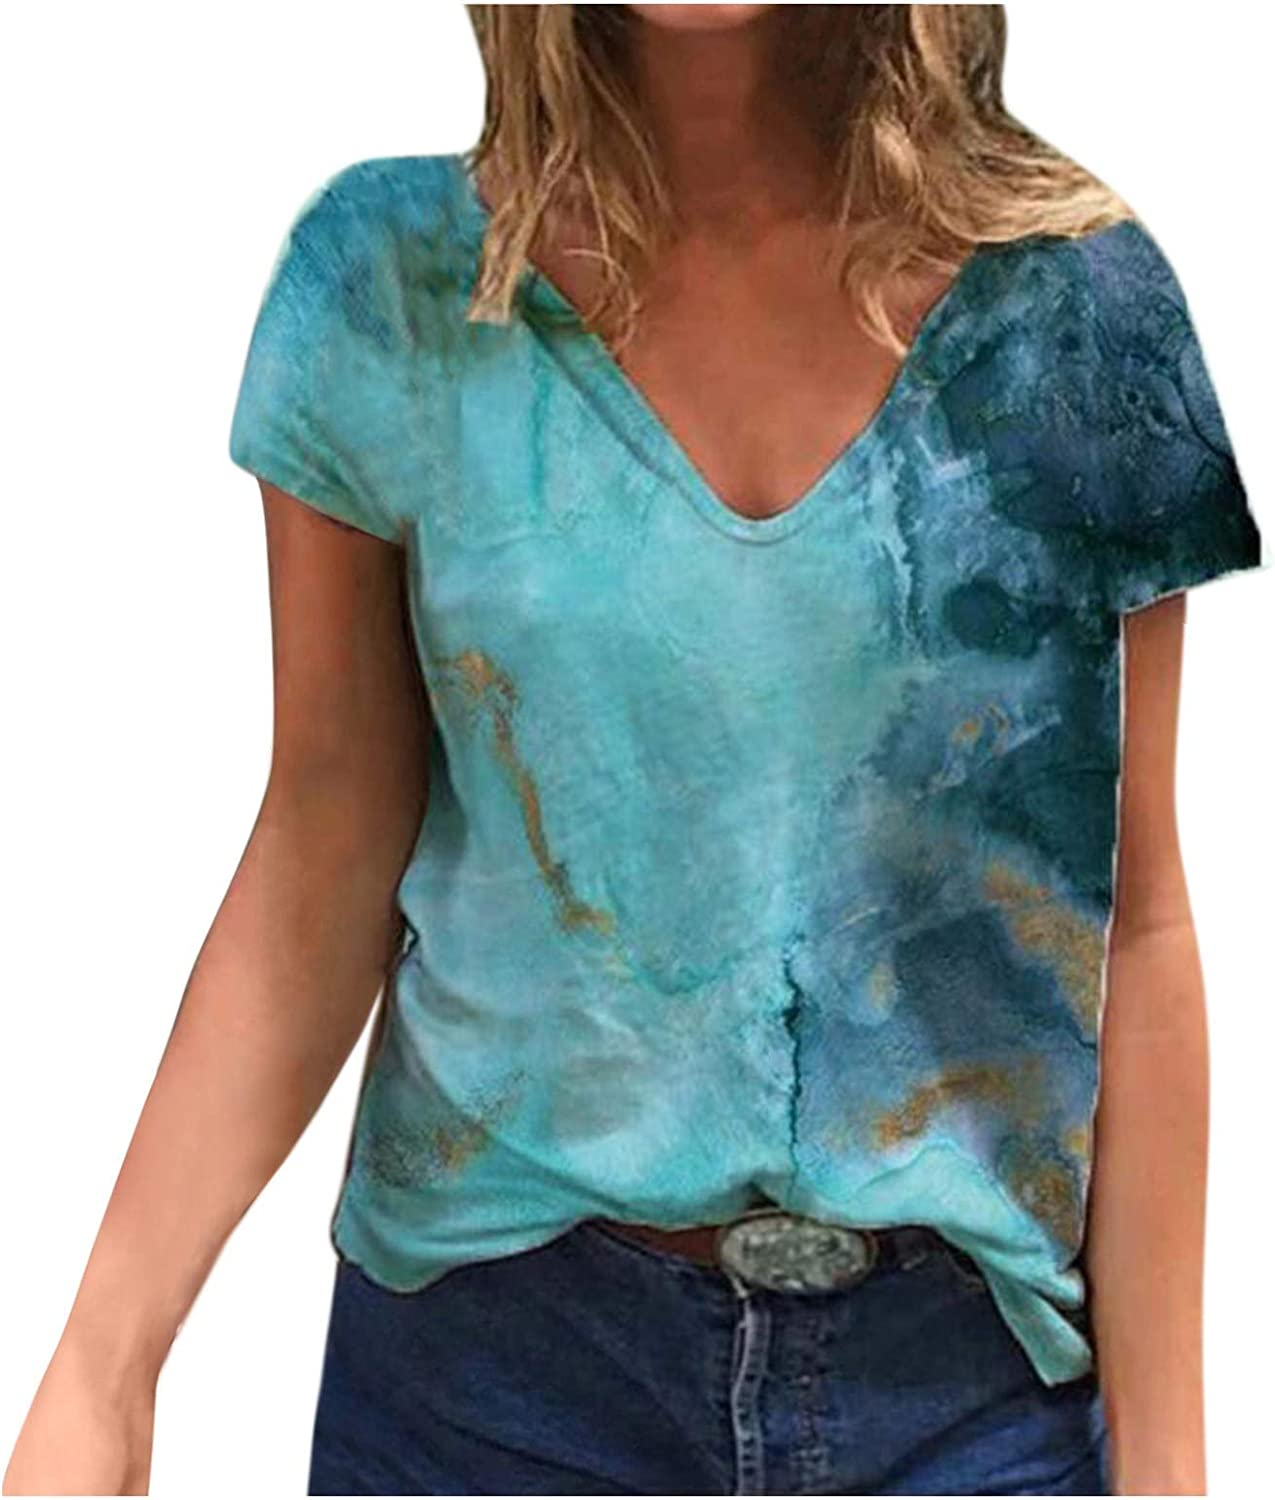 KAMEMIR Graphic Tees for Women, Summer T Shirt Landscape Graphic Tee Short Sleeve V Neck Tunic Casual Blouse Loose Tops